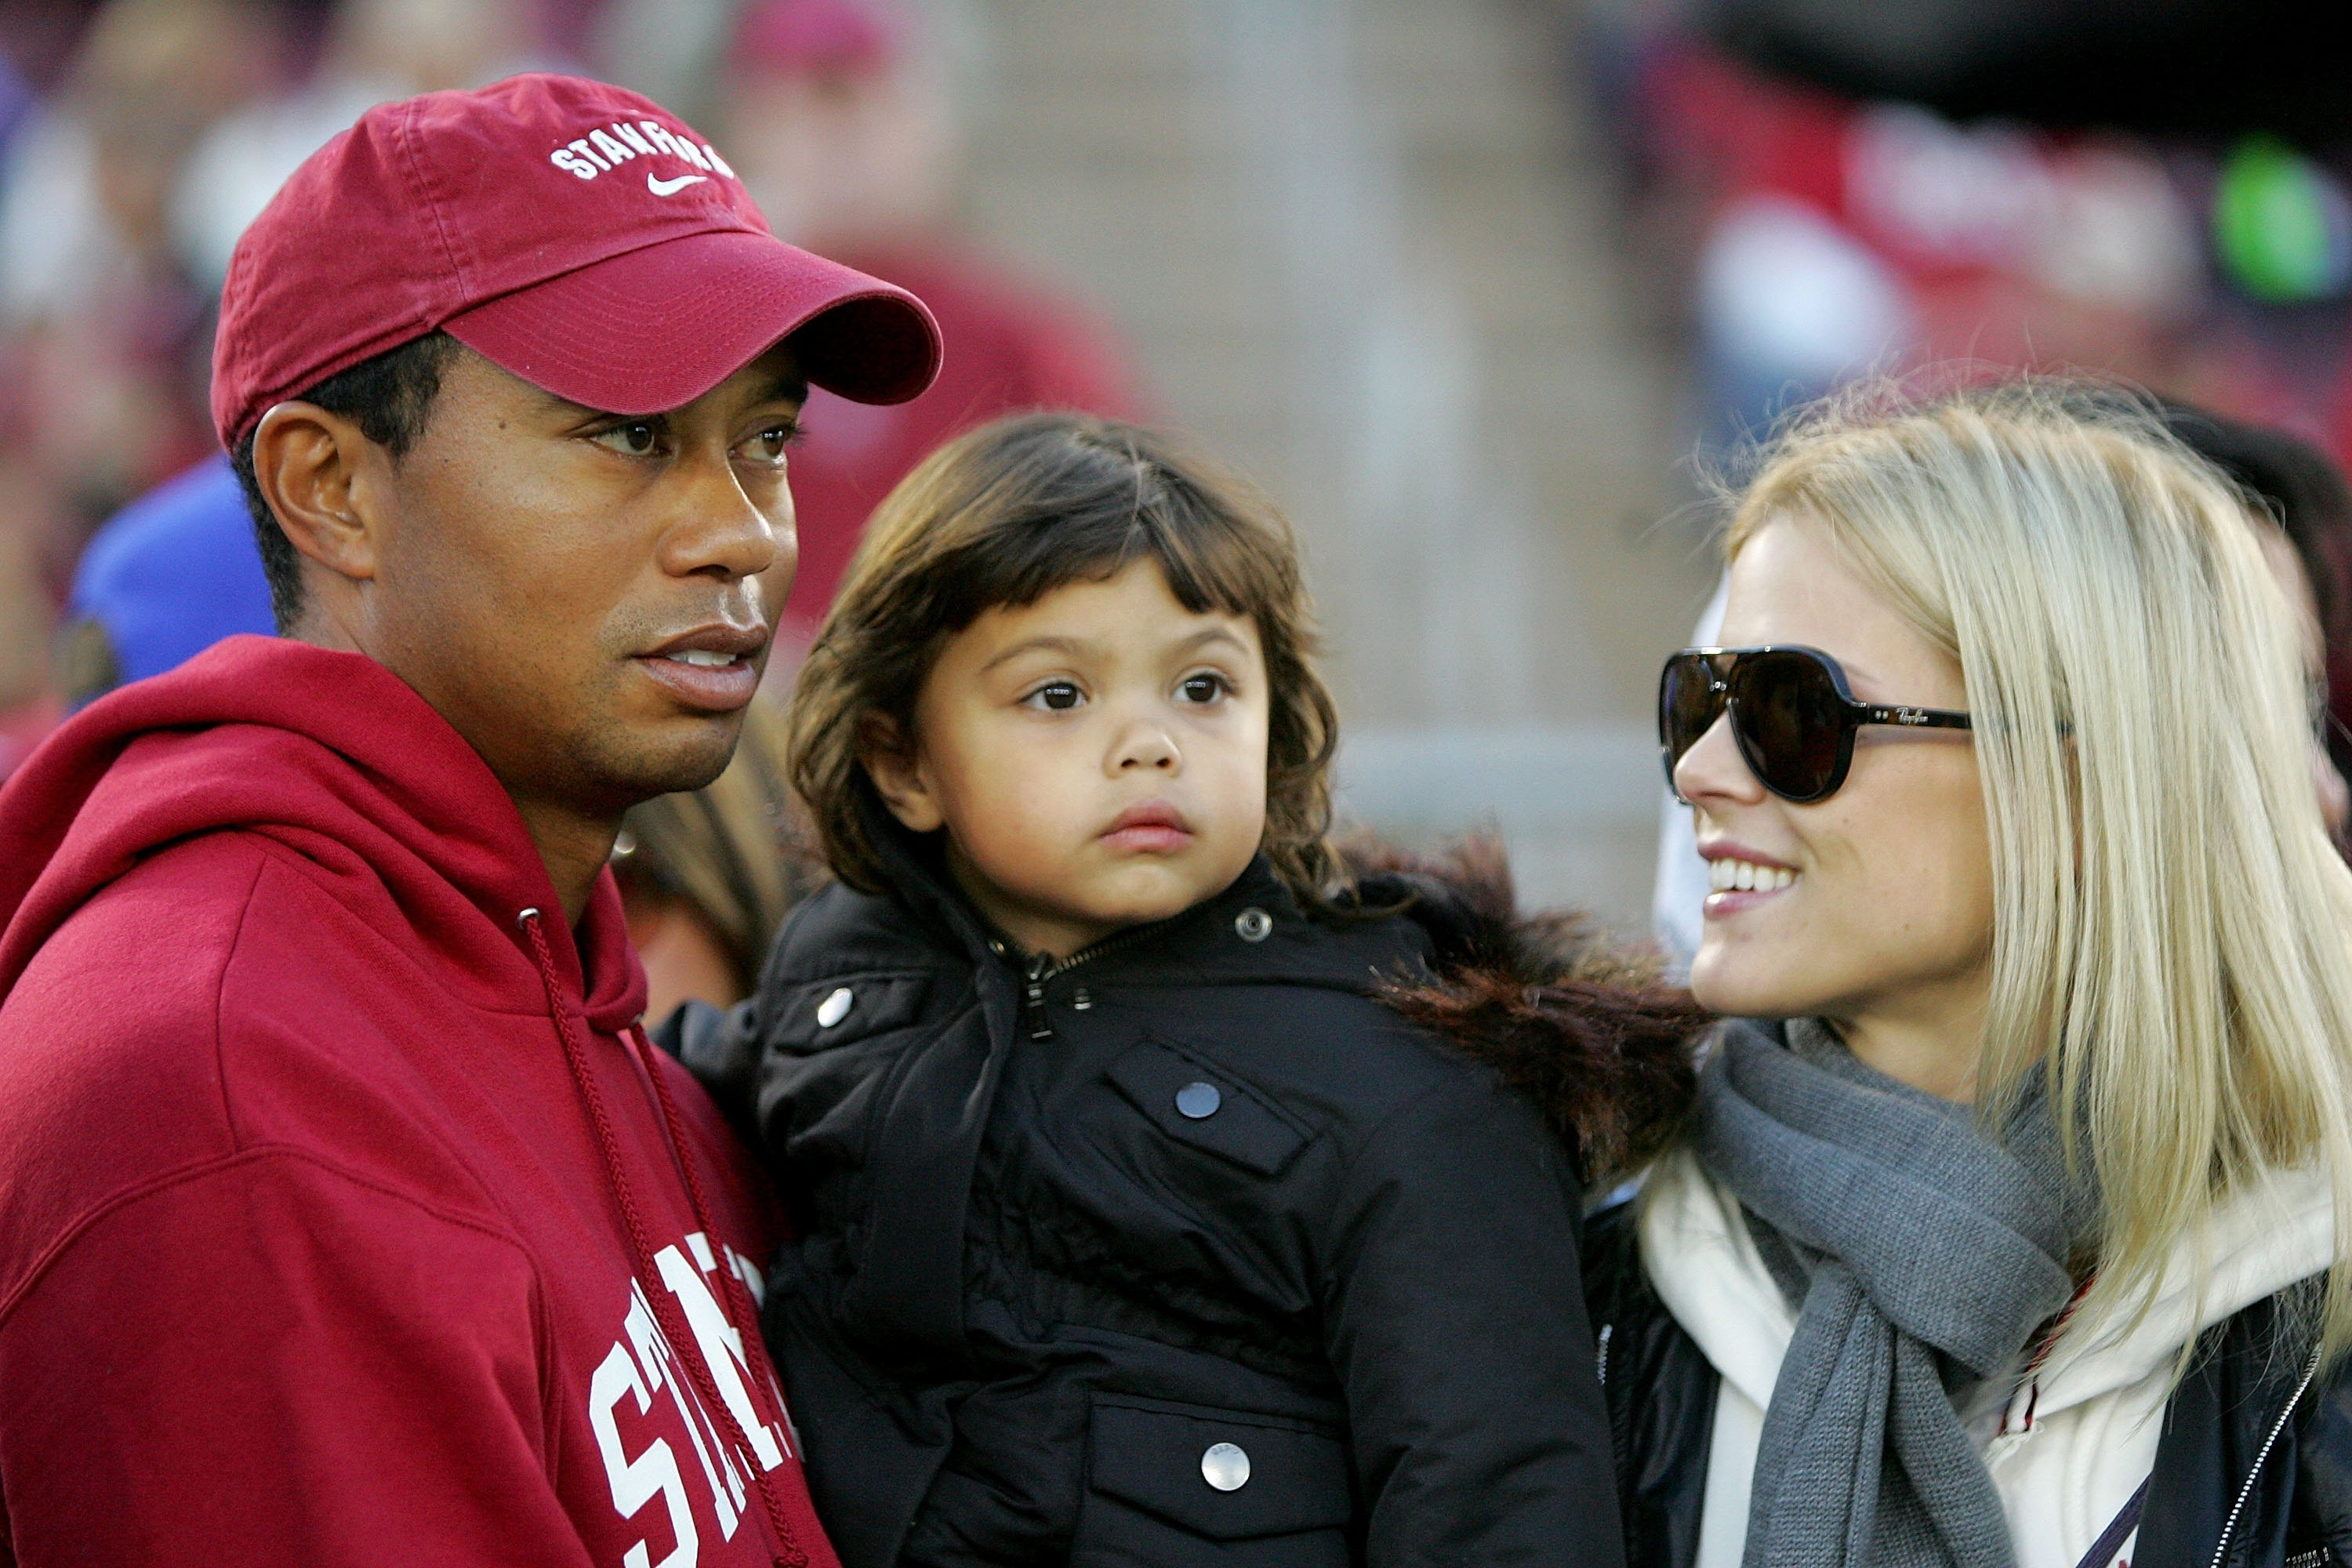 Tiger Woods, his daugher Sam, his ex-wife, Elin Nordegren on November 21, 2009 in Palo Alto, California | Photo: Getty Images